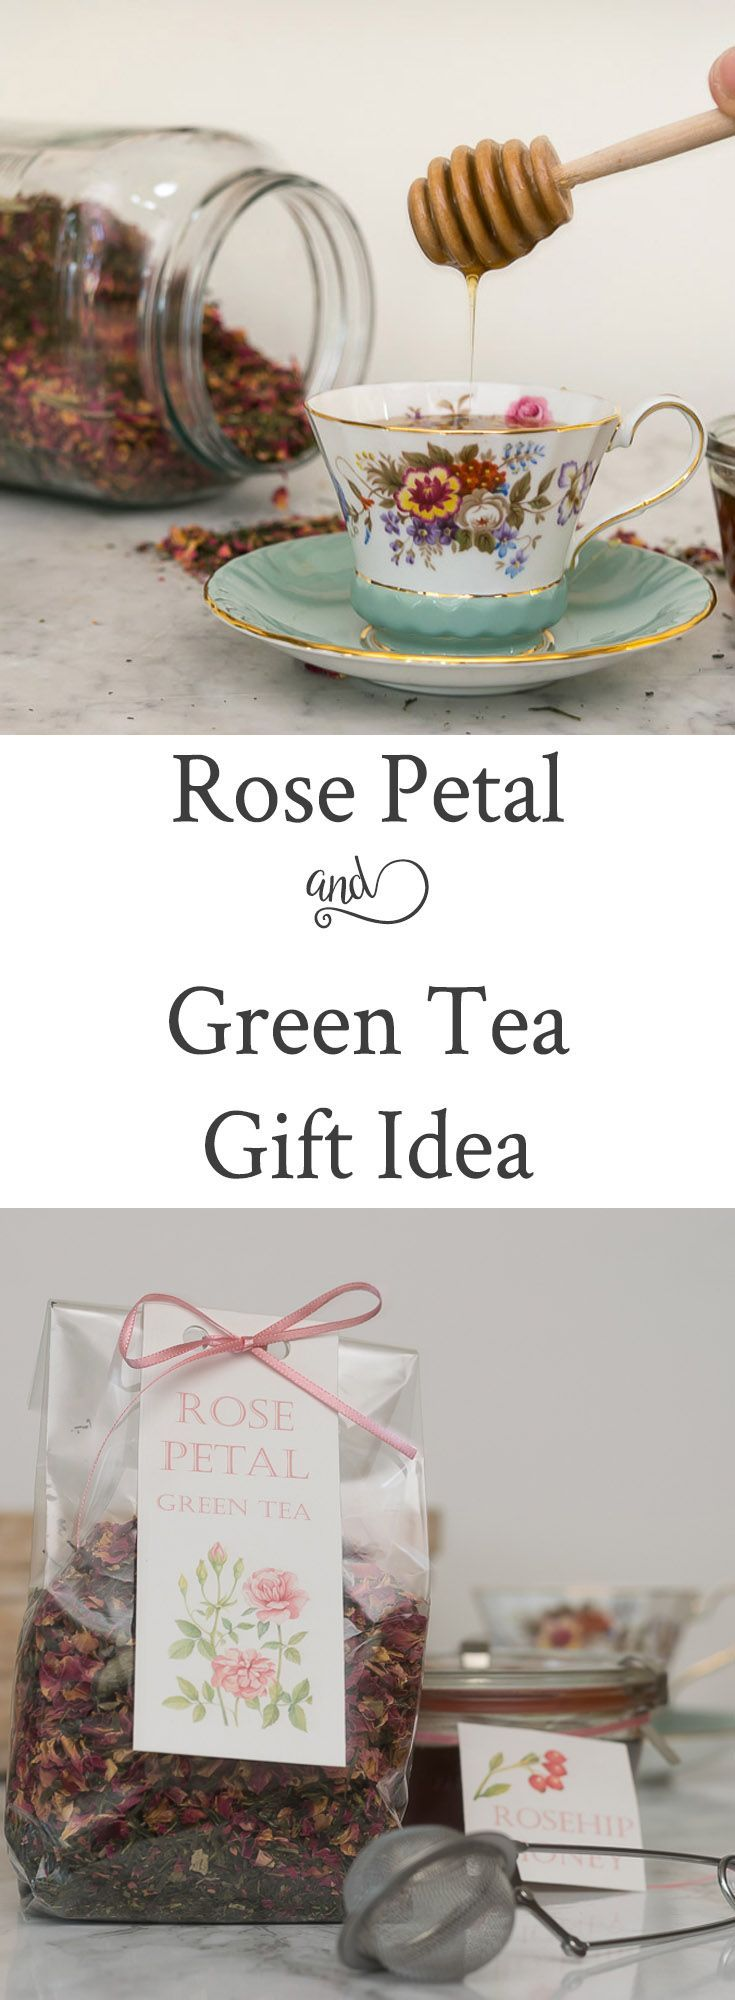 Rose Petals and Green Tea Gift